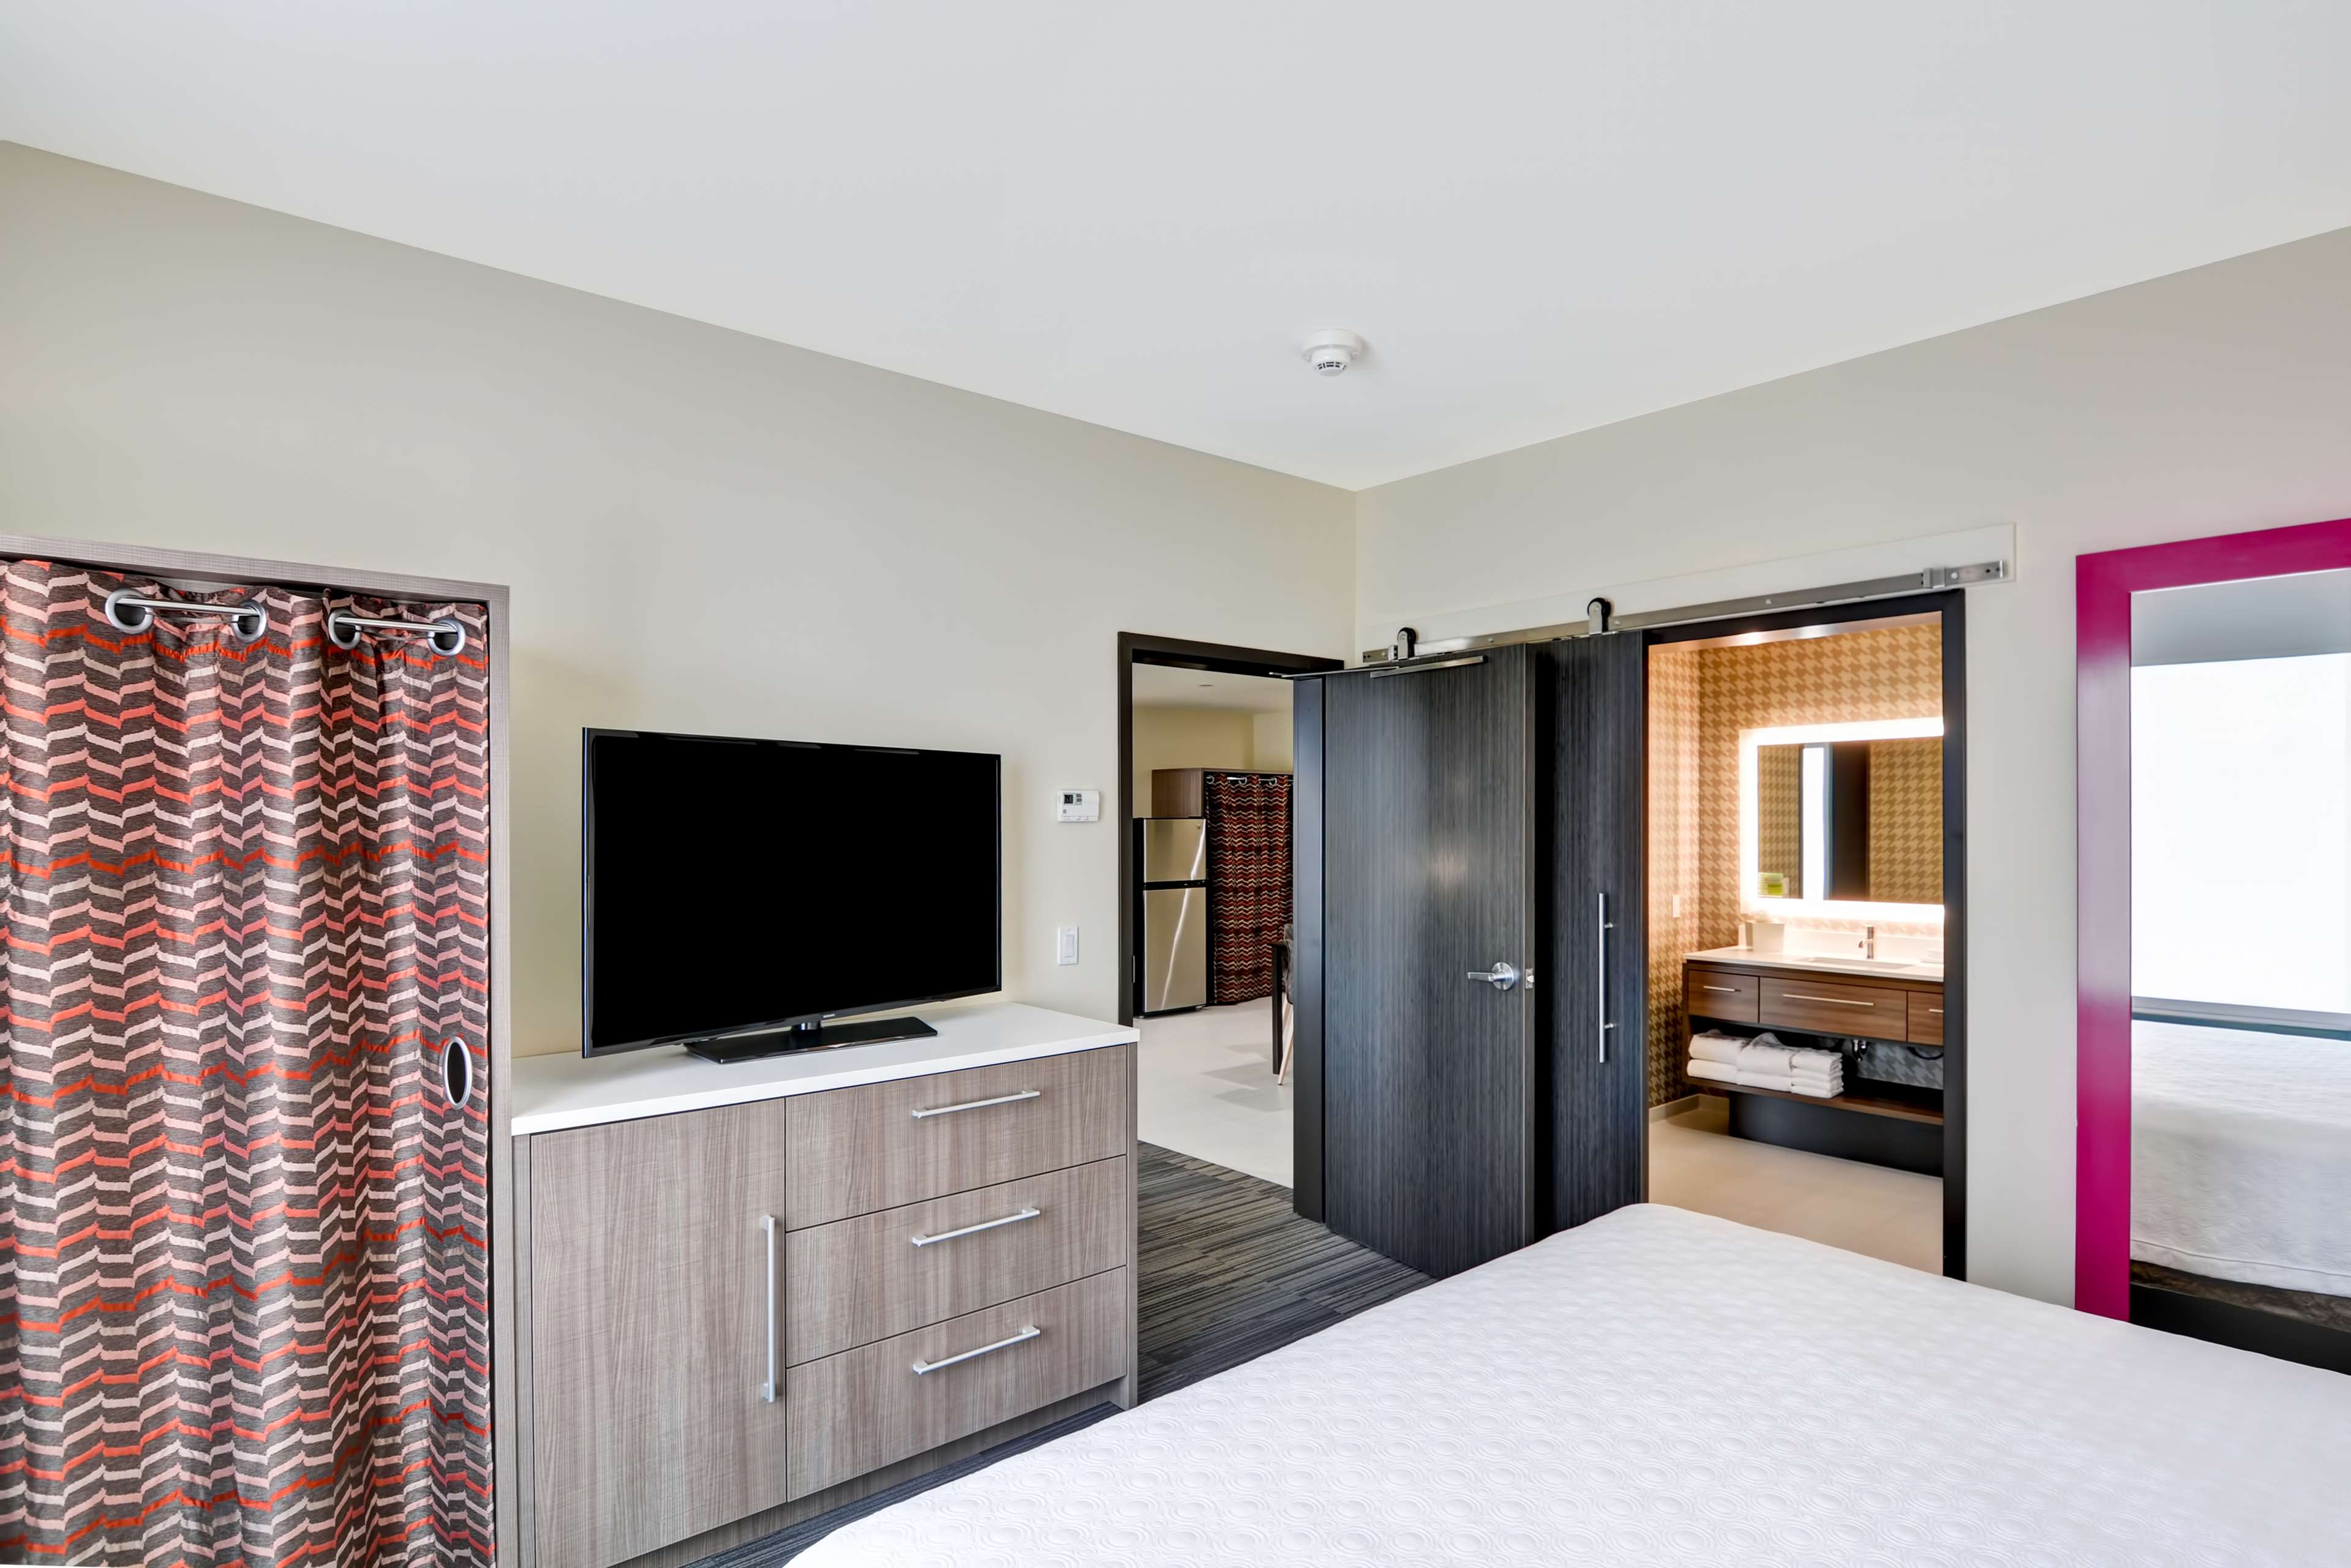 Home2 Suites by Hilton OKC Midwest City Tinker AFB image 22